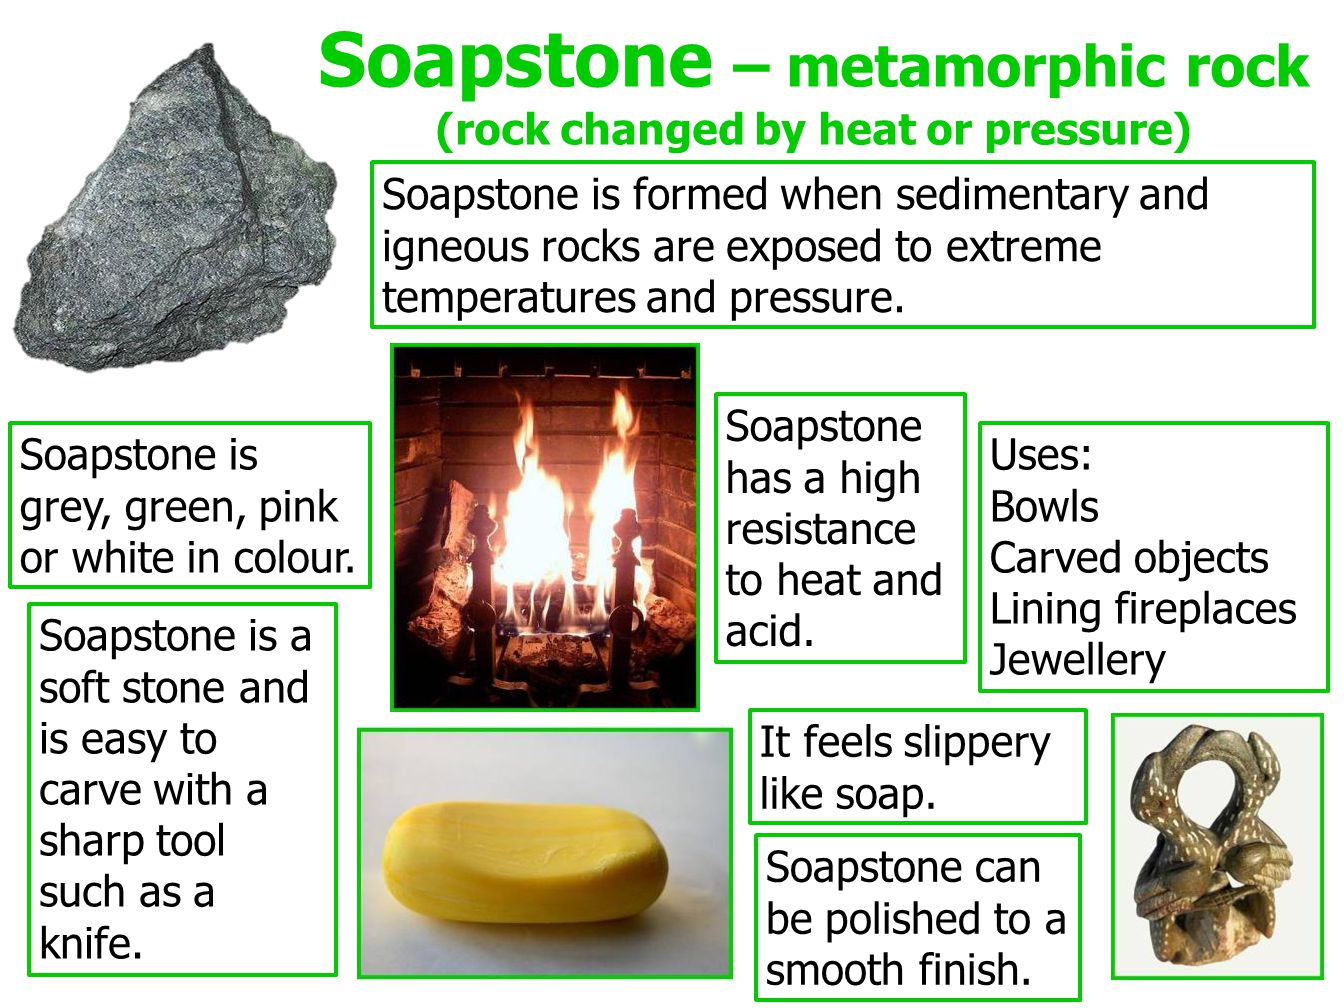 Soapstone – metamorphic rock (rock changed by heat or pressure)